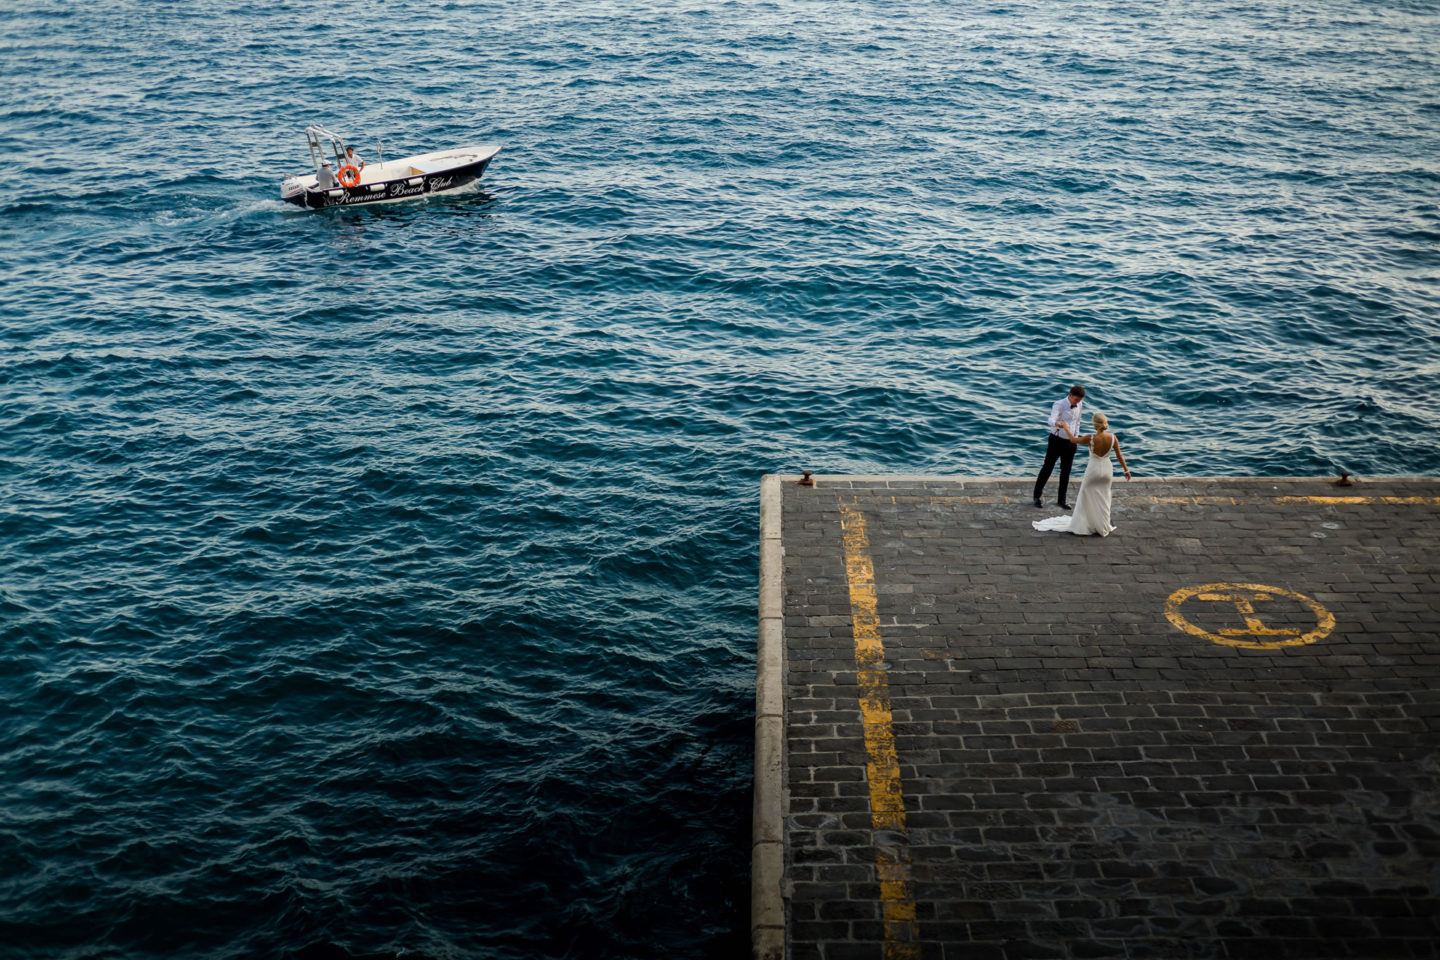 View :: Wedding in Positano. Sea and love :: Luxury wedding photography - 42 :: View